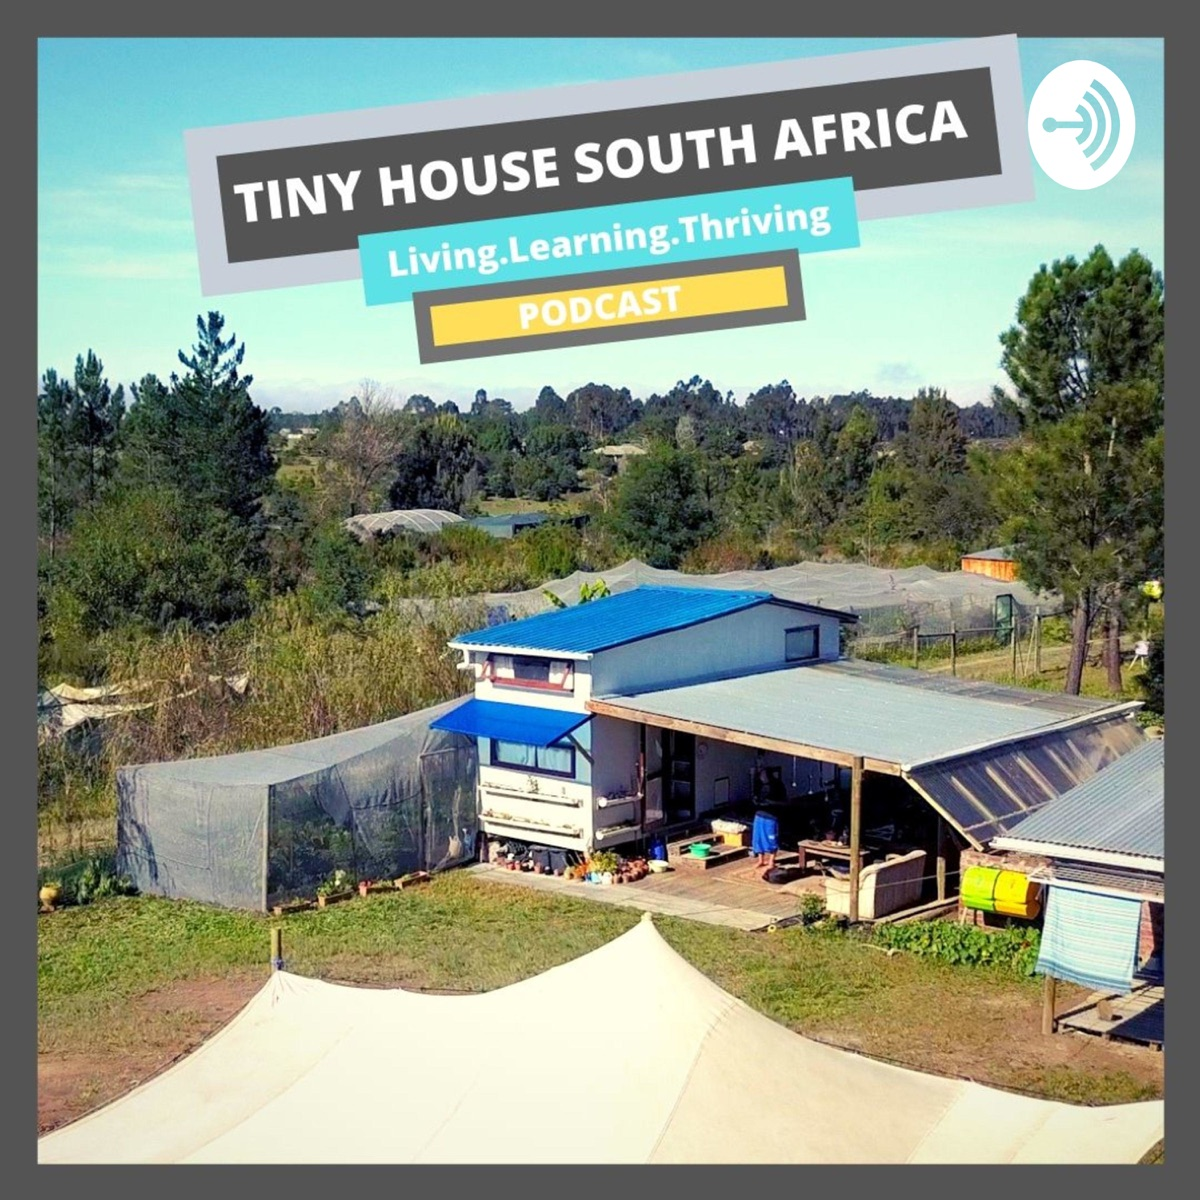 Tiny House South Africa